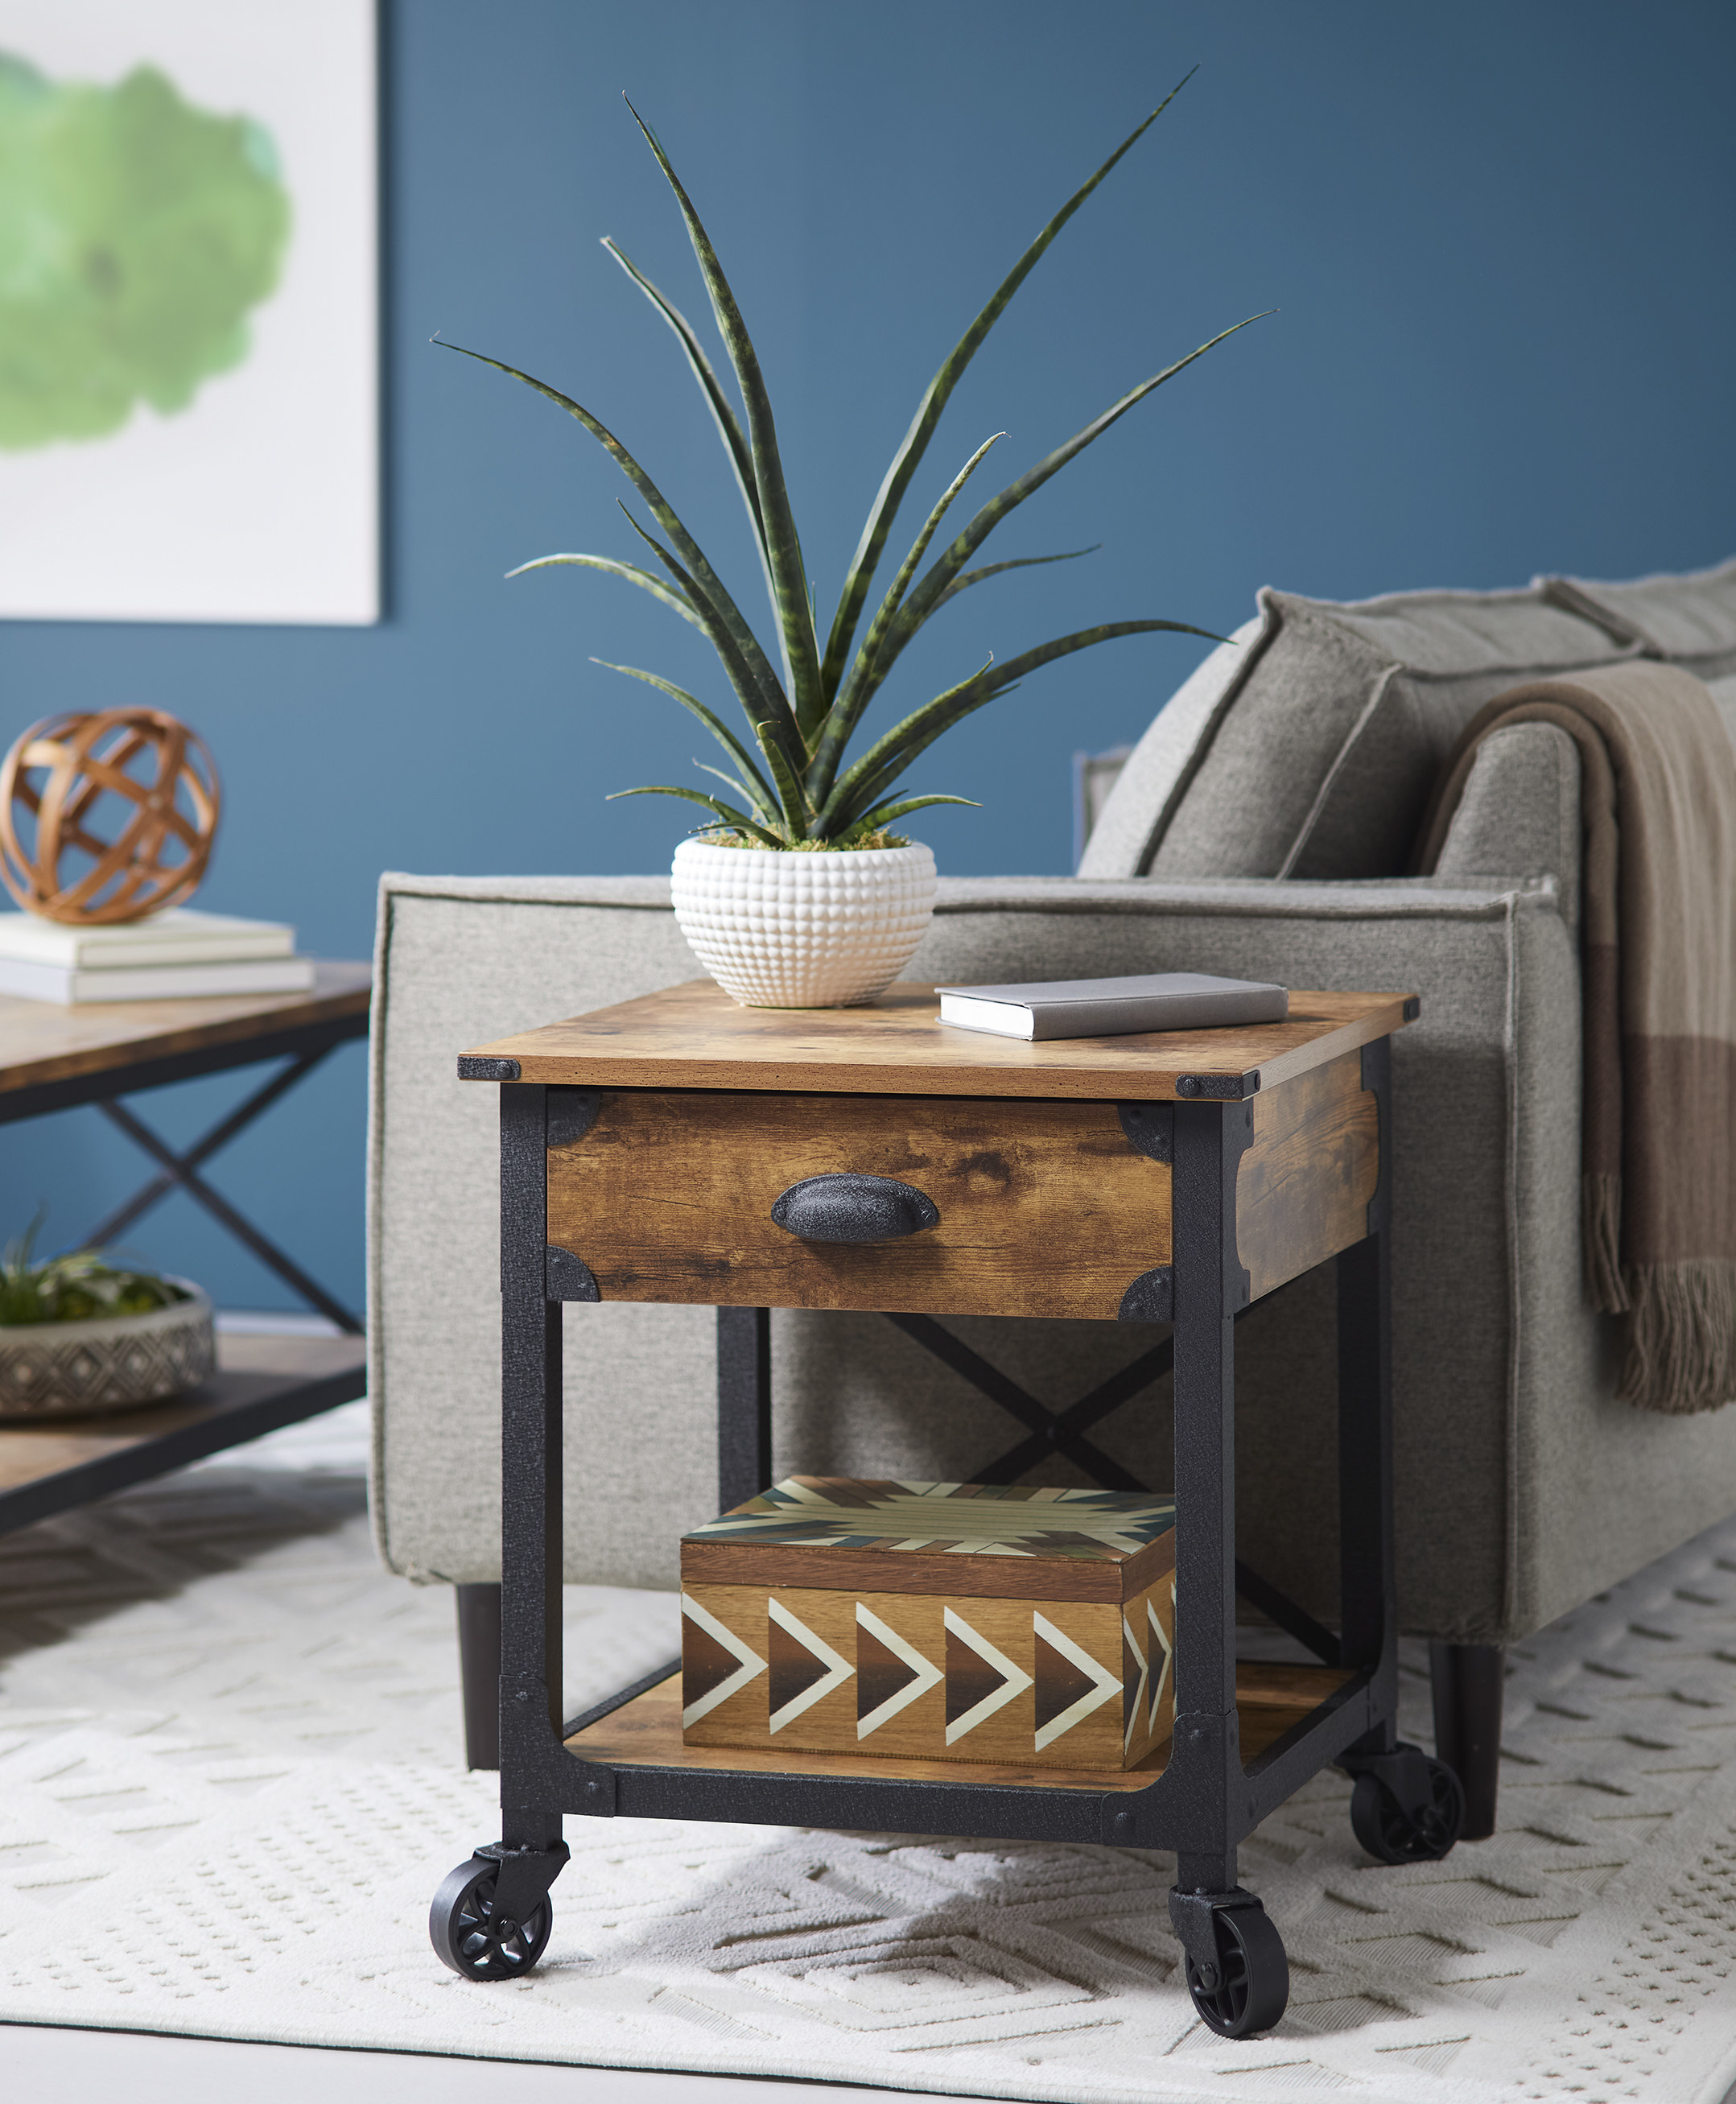 a wooden end table with black legs and wheels